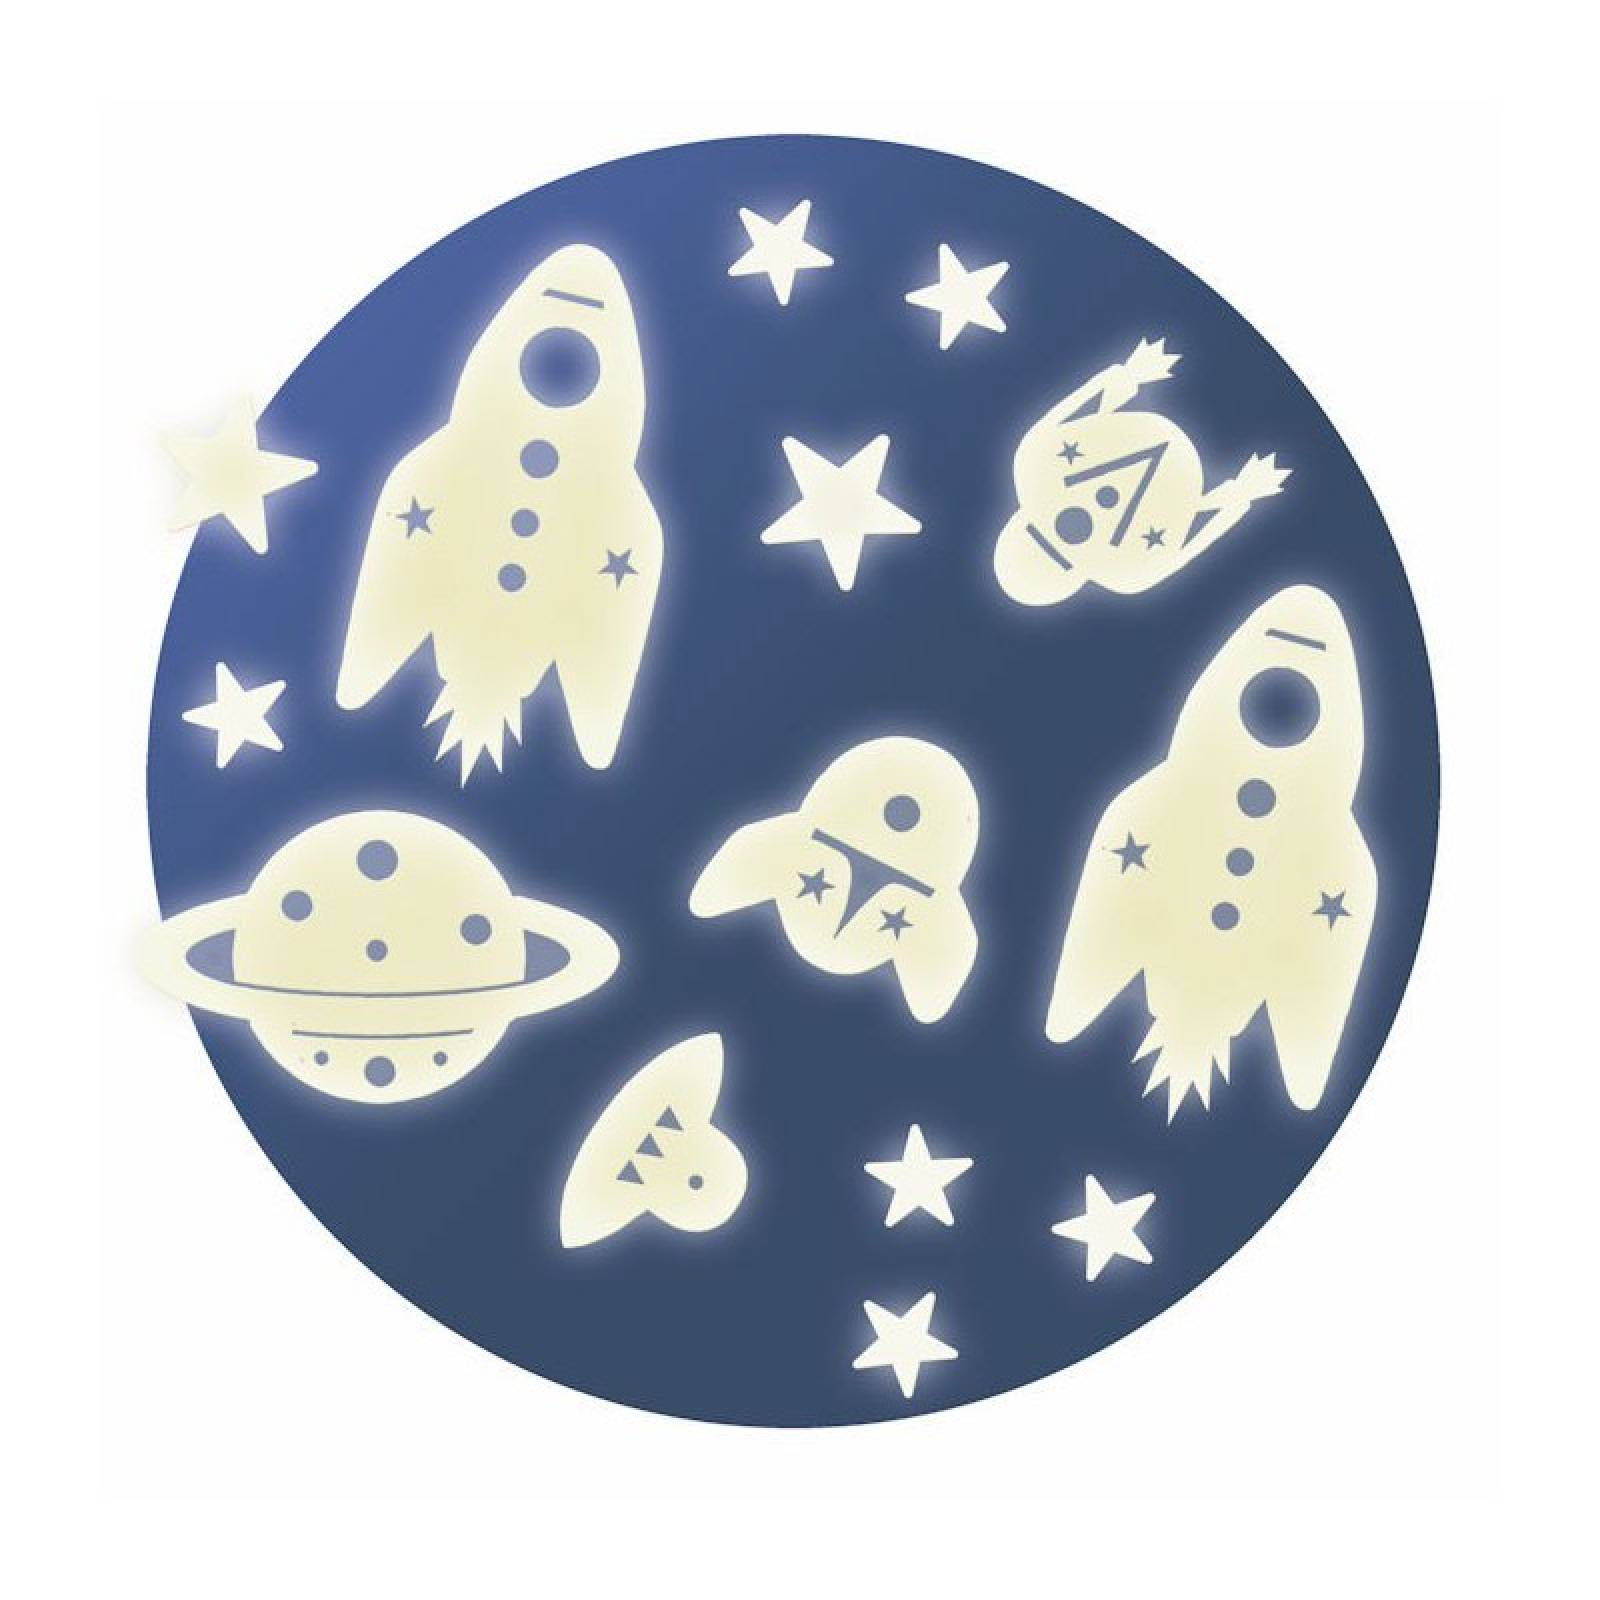 Space Mission - Glow In The Dark Room Stickers thumbnails